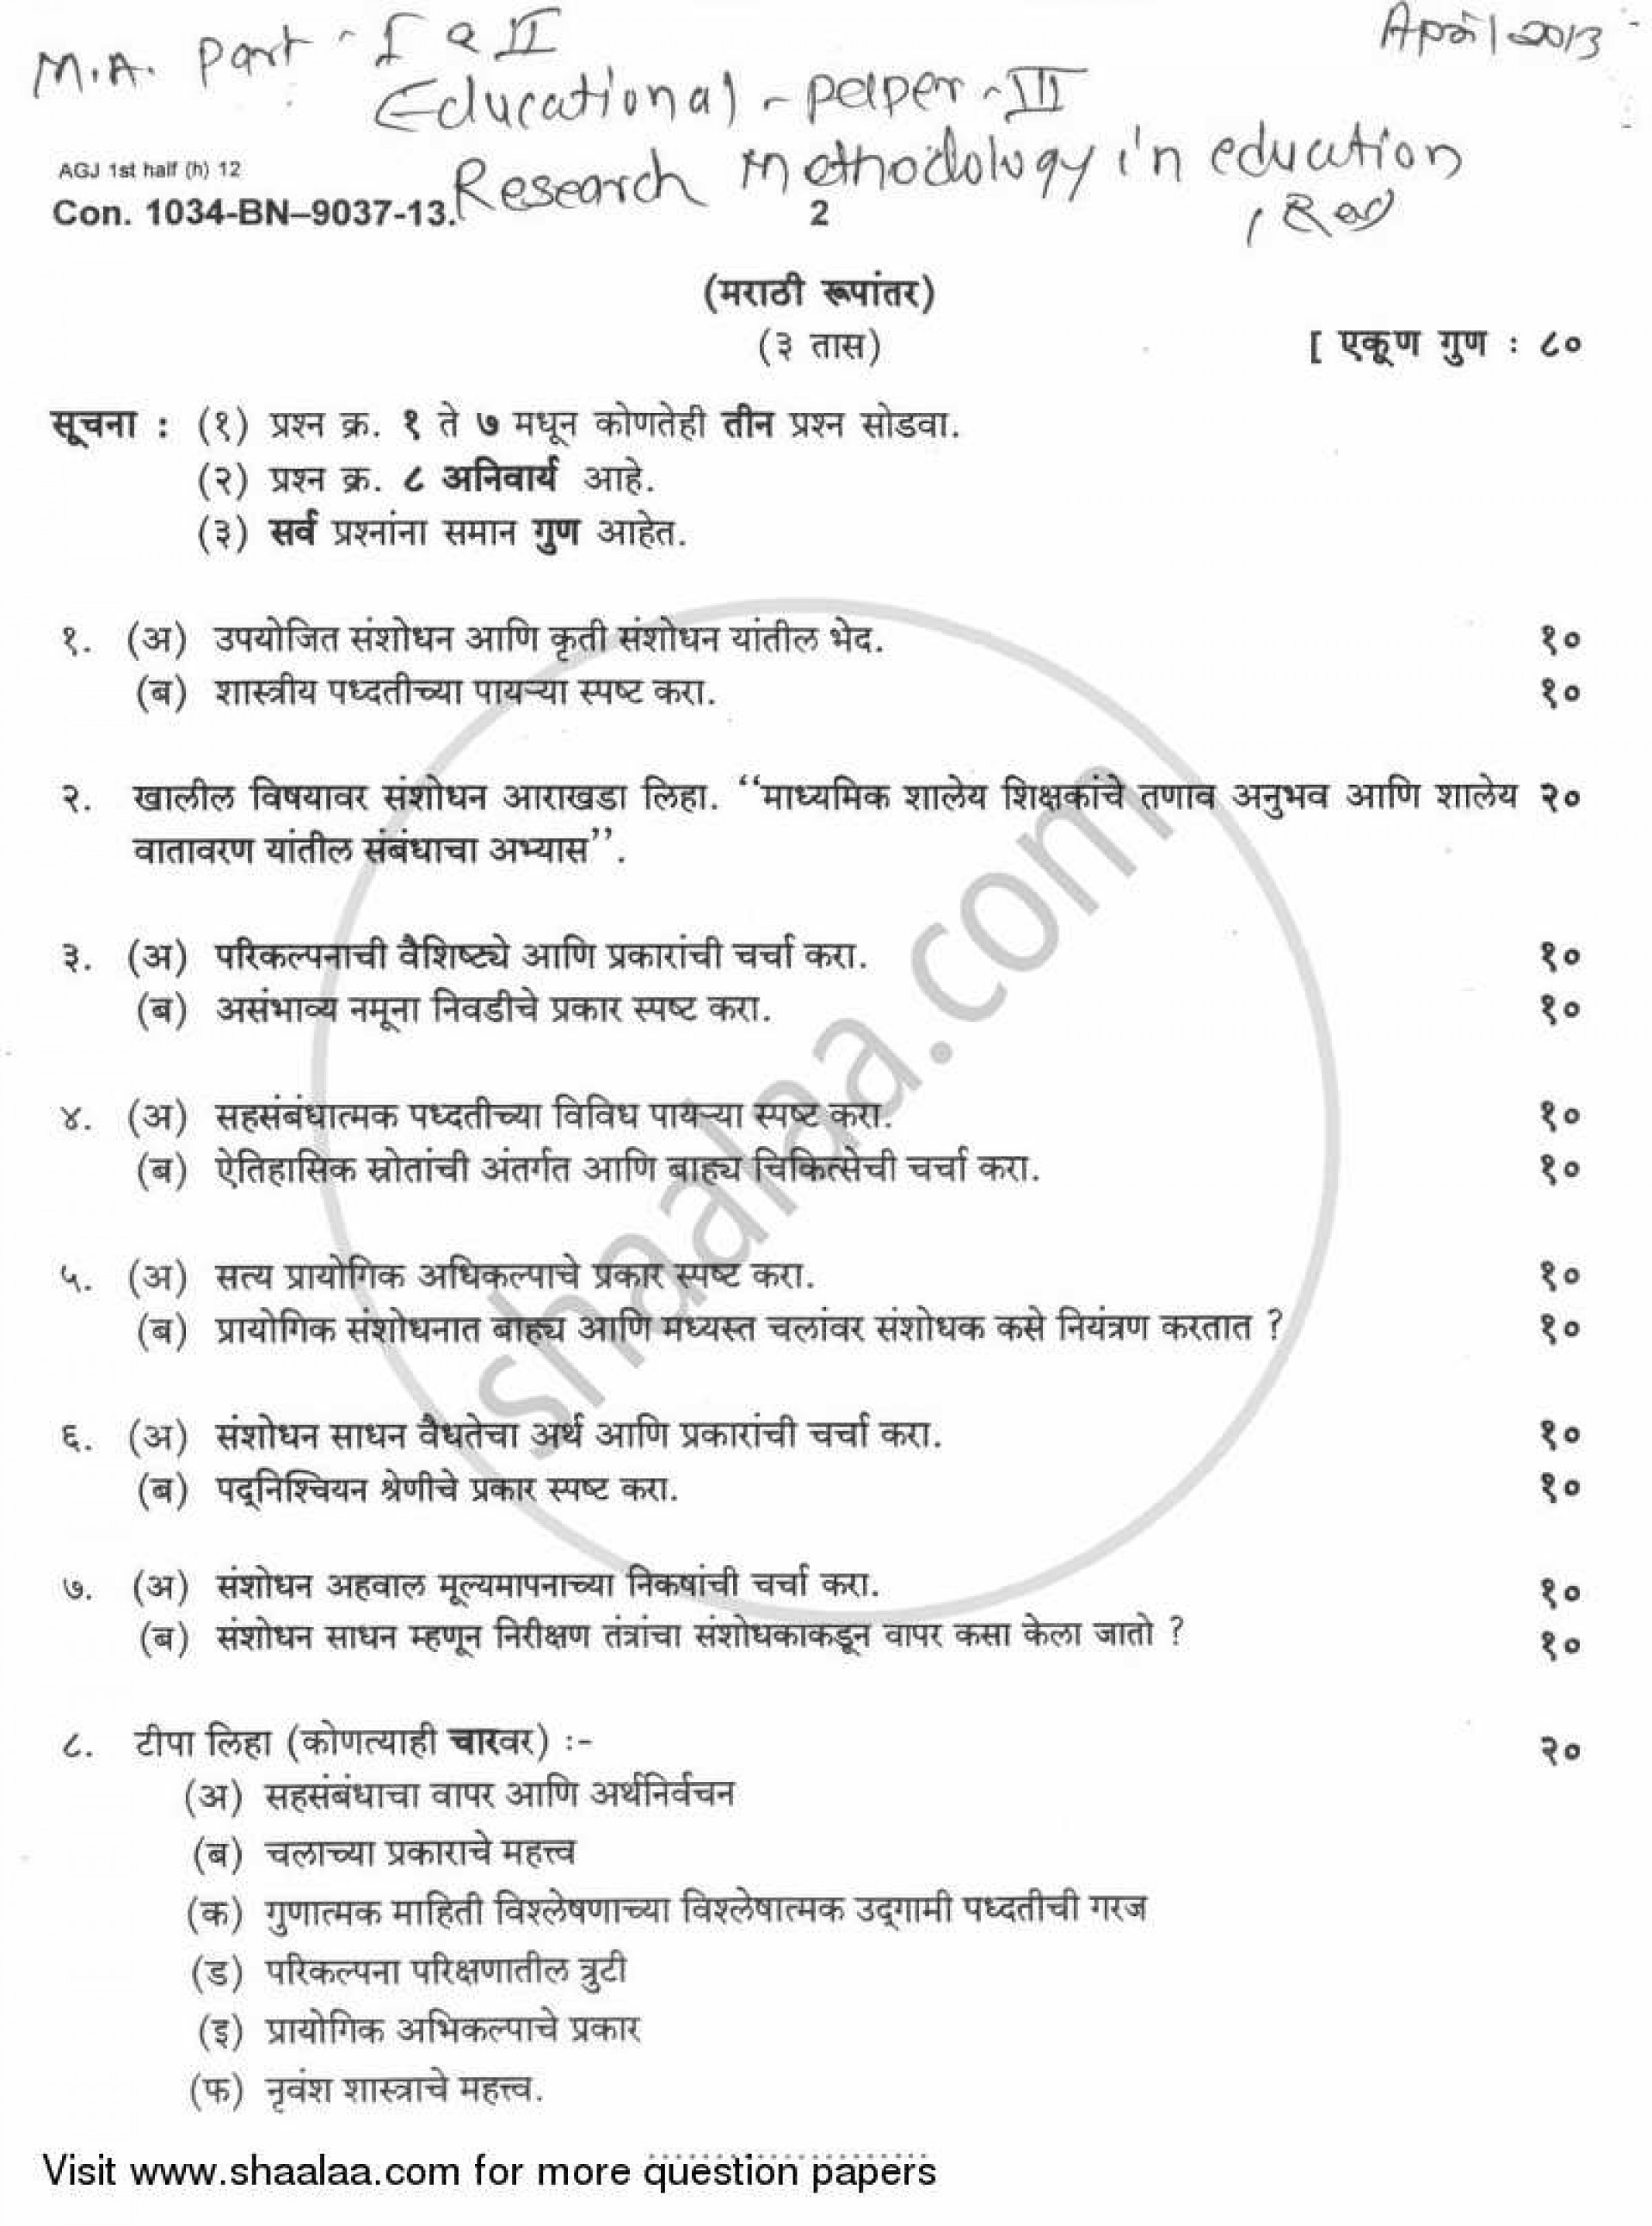 016 University Of Mumbai Master Ma Research Methodology Education Yearly Pattern Part 2012 2773731d8b9ed4a82aab006785367985a Paper Example Beautiful In Engineering Experimental Section 1920